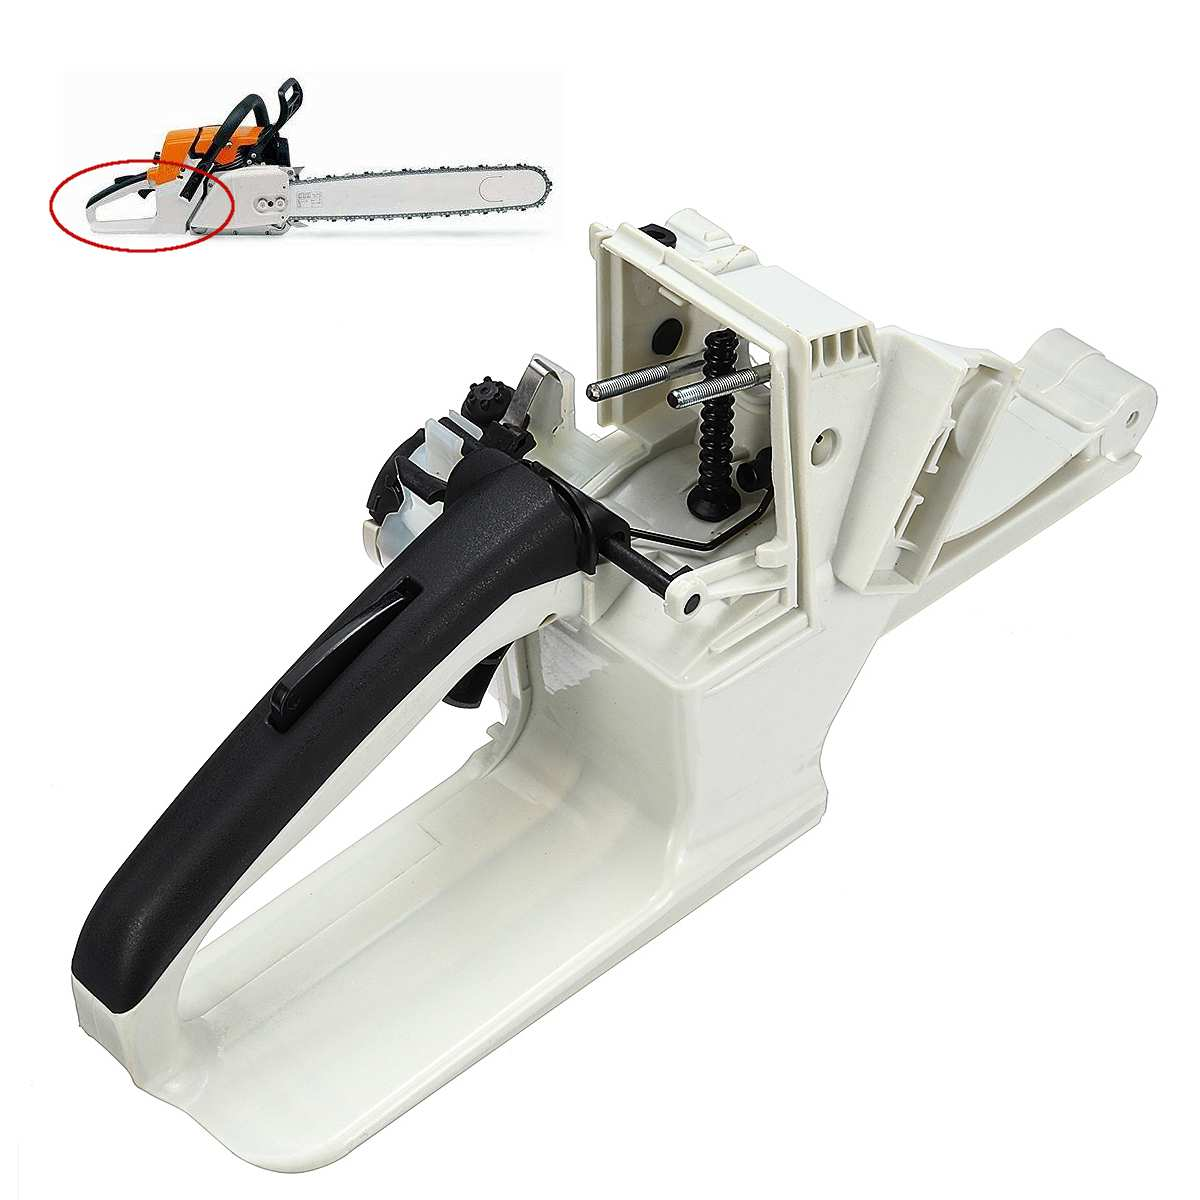 Gas Fuel Tank Rear Handle For Stihl Ms260 Ms240 026 024